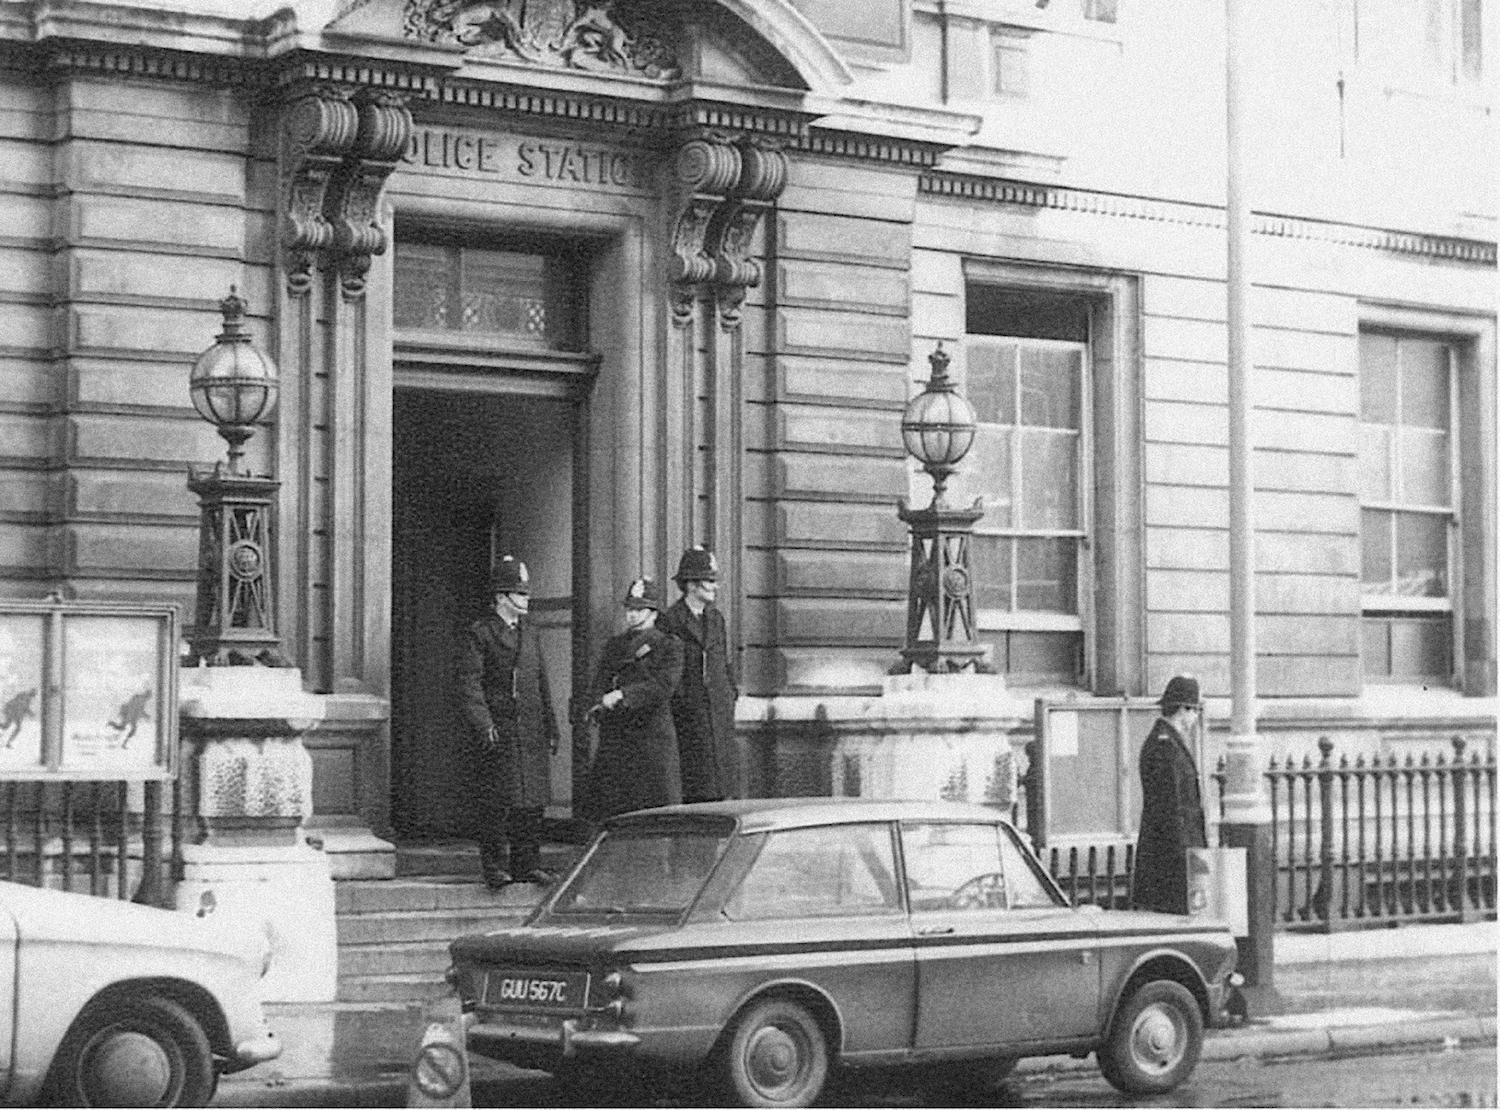 Policemen standing outside building with vintage car in street